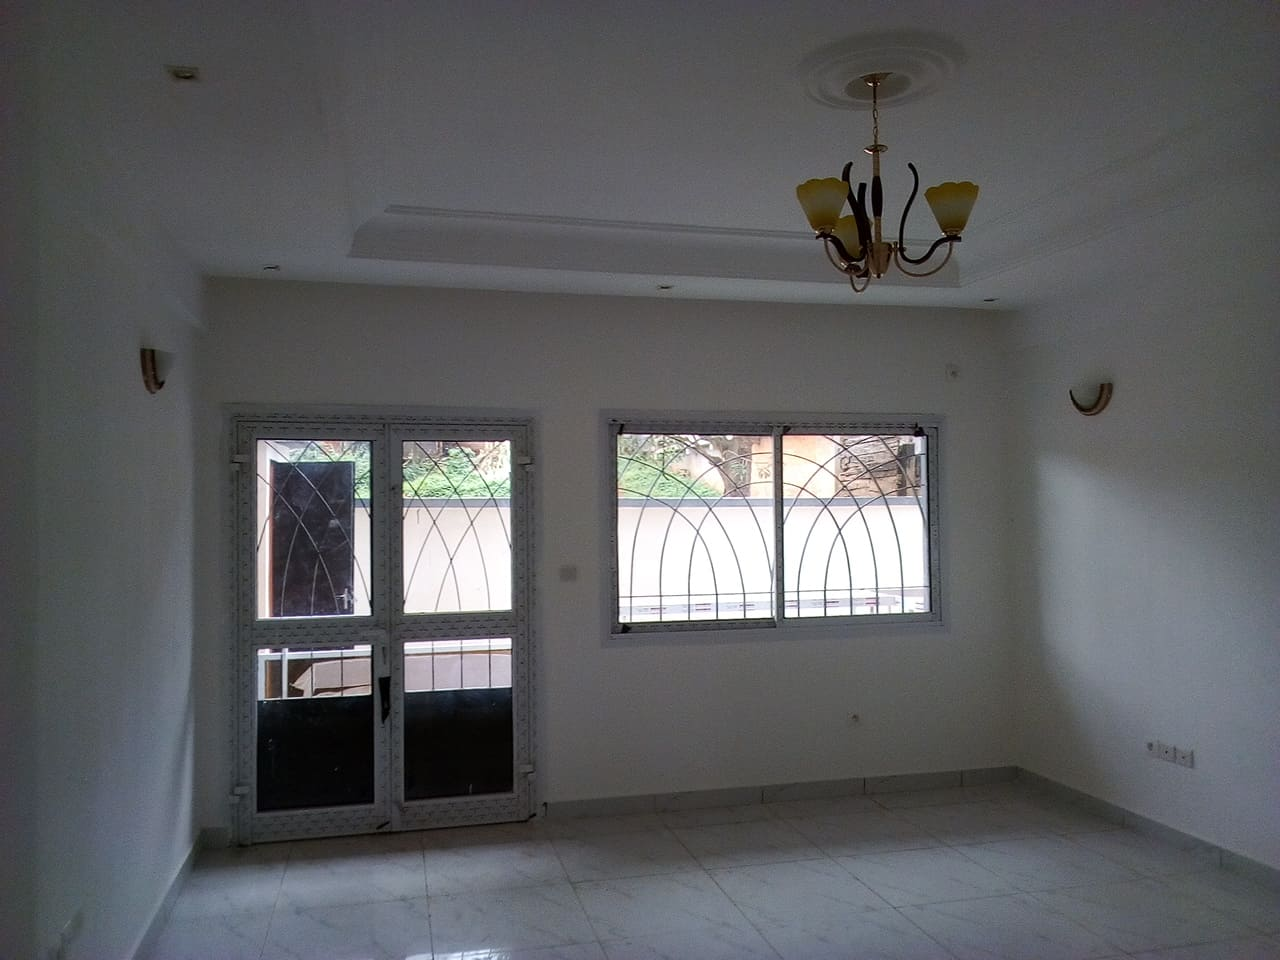 Apartment to rent - Yaoundé, Essos, pas loin de fokou - 1 living room(s), 2 bedroom(s), 3 bathroom(s) - 250 000 FCFA / month